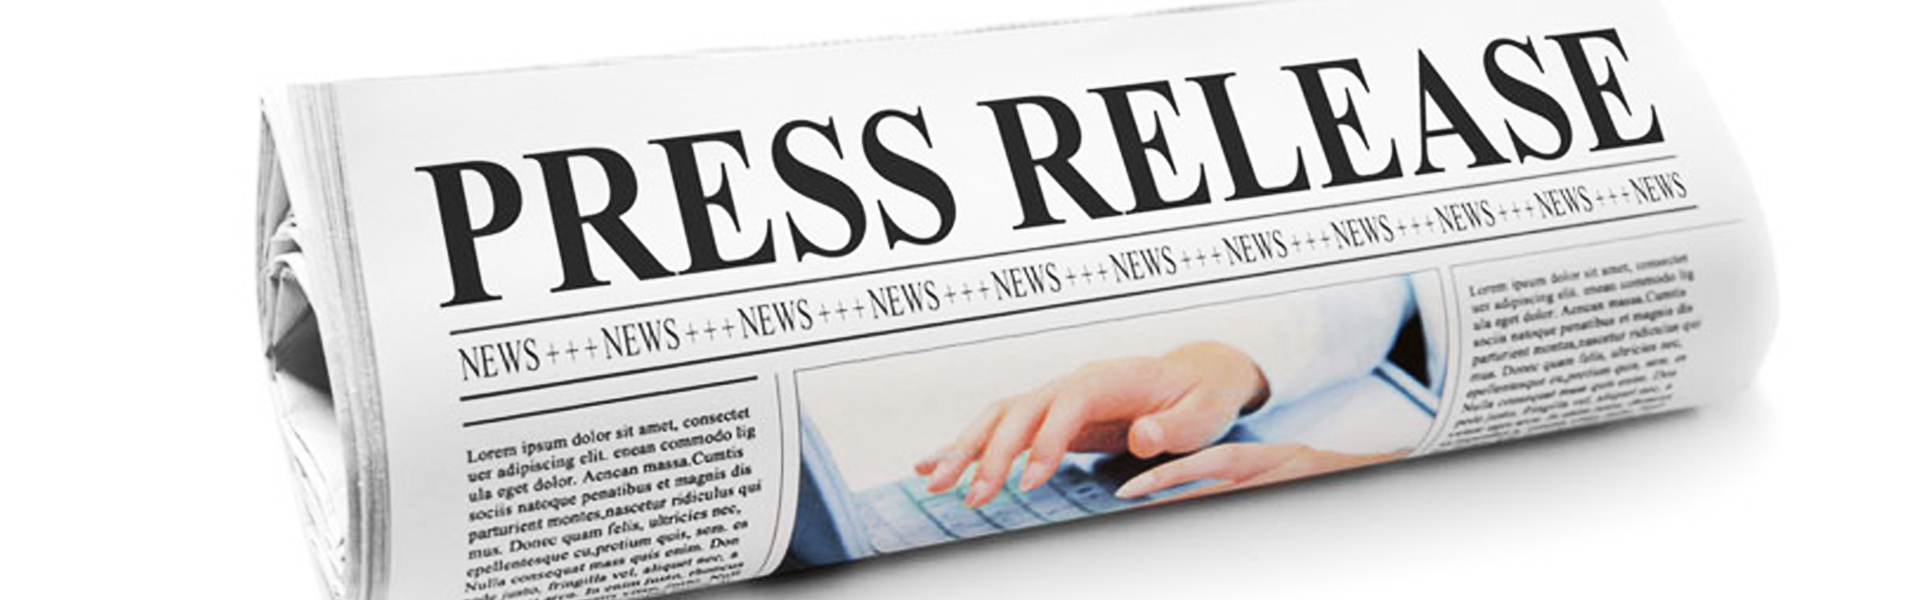 Press release writing, 6000+ press releases written ...